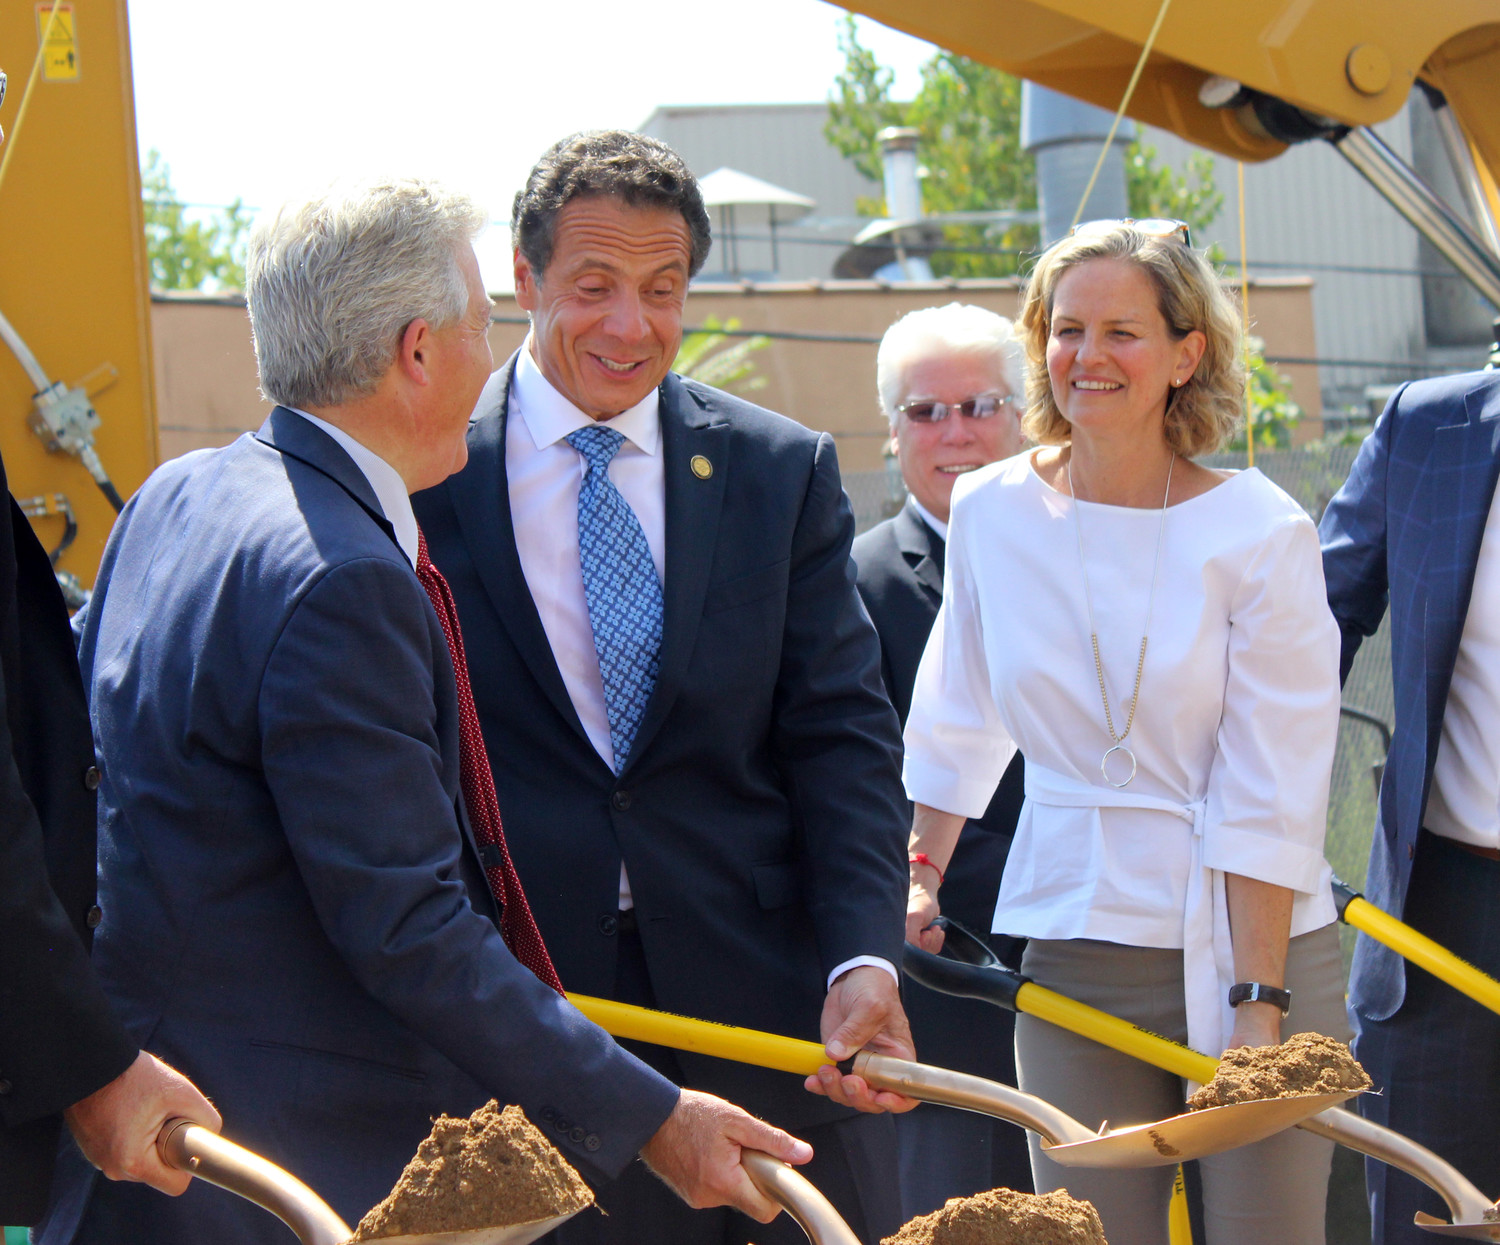 In honor of the official groundbreaking of the LIRR's third track, Gov. Andrew Cuomo, center; Nassau County Executive Laura Curran, right; and Suffolk County Executive Steve Bellone dug shovels into a construction site at the Westbury LIRR station.